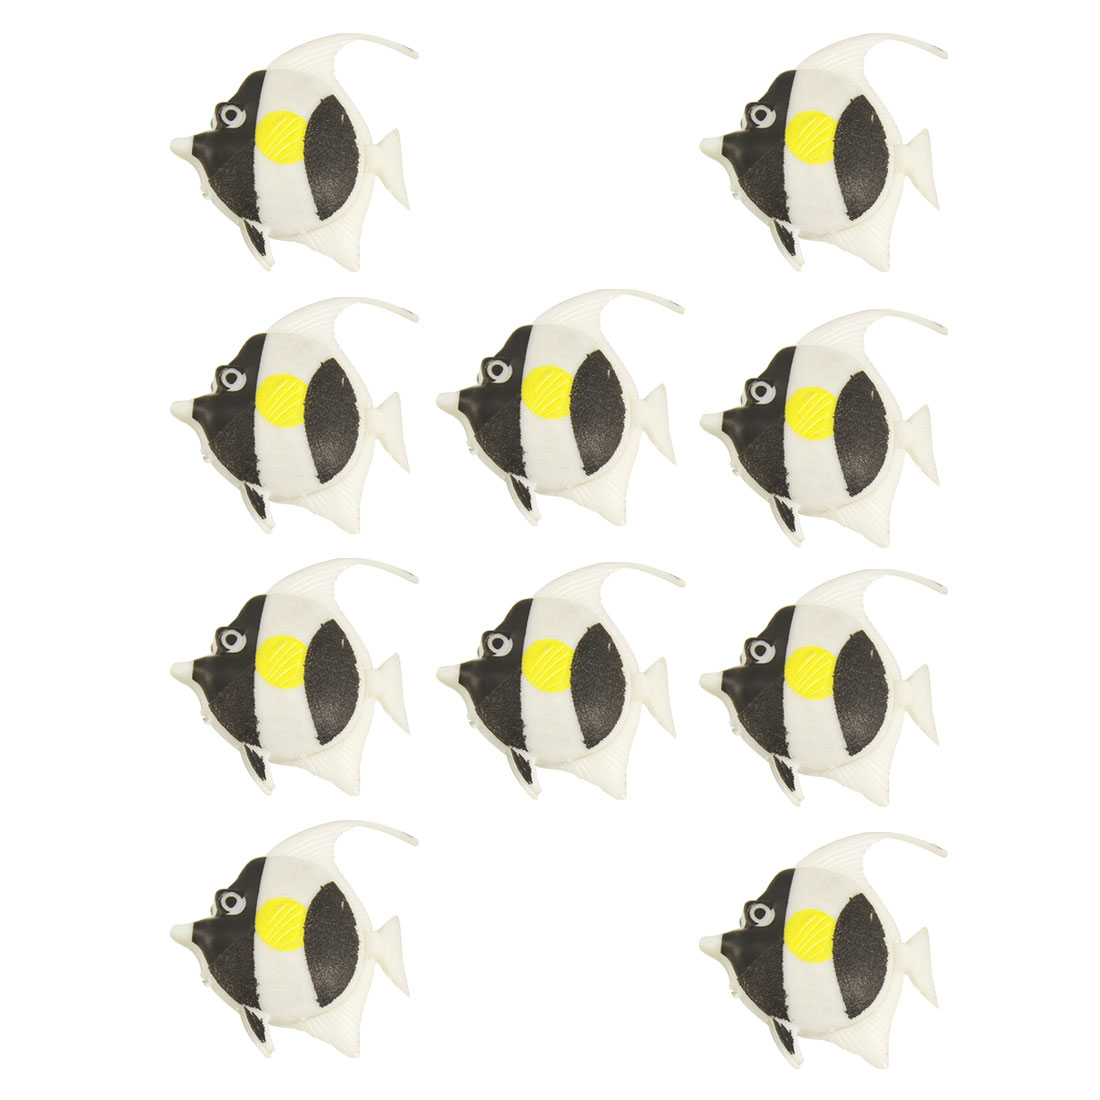 Aquarium Tank Decor 10 Pcs Artificial Black White Mini Floating Fish